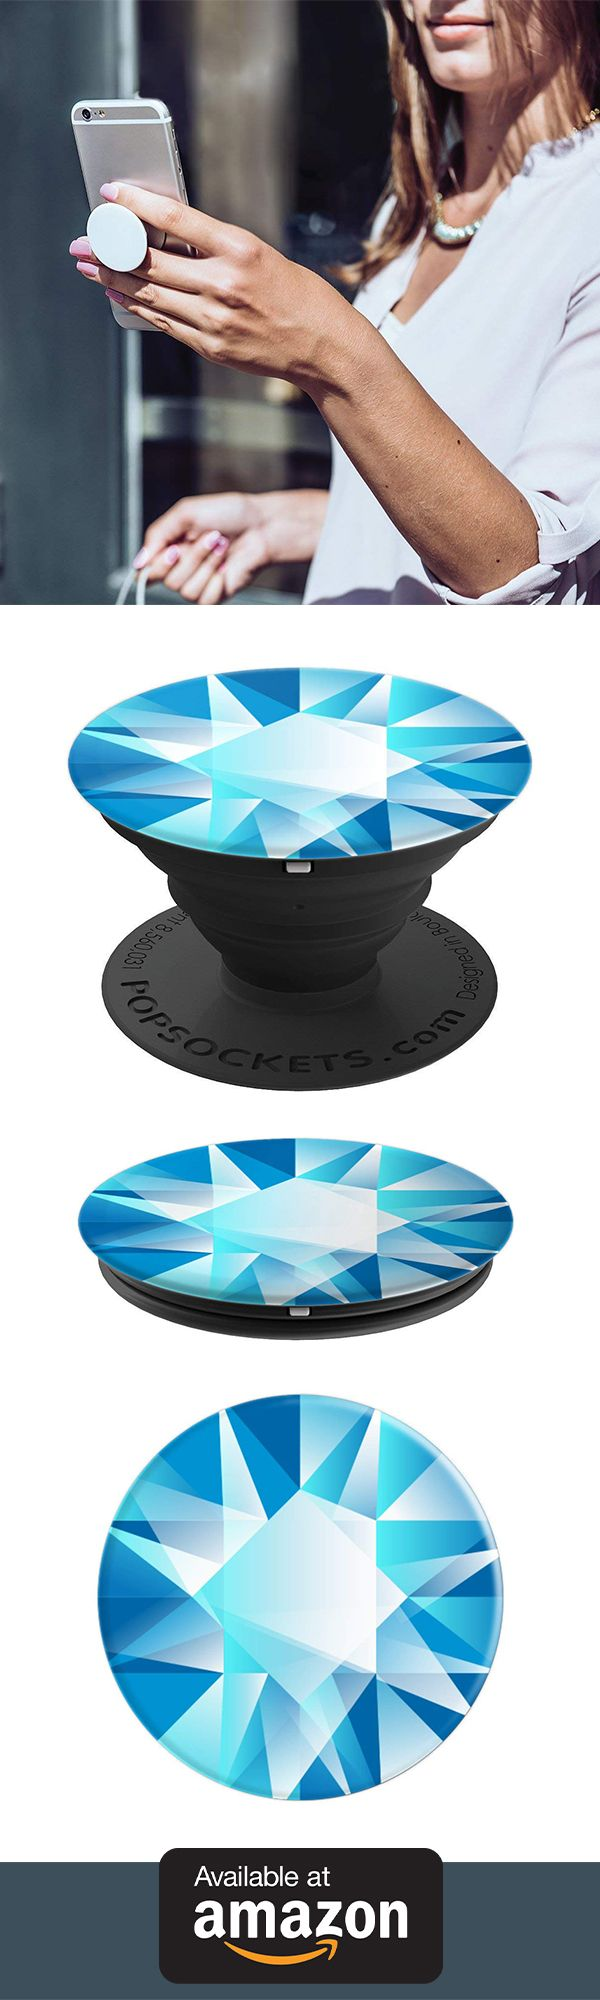 Gems In Blue Stone Gift Popsockets Grip And Stand For Phones And Tablets Pop Sockets Iphone Popsockets Diy Pop Socket